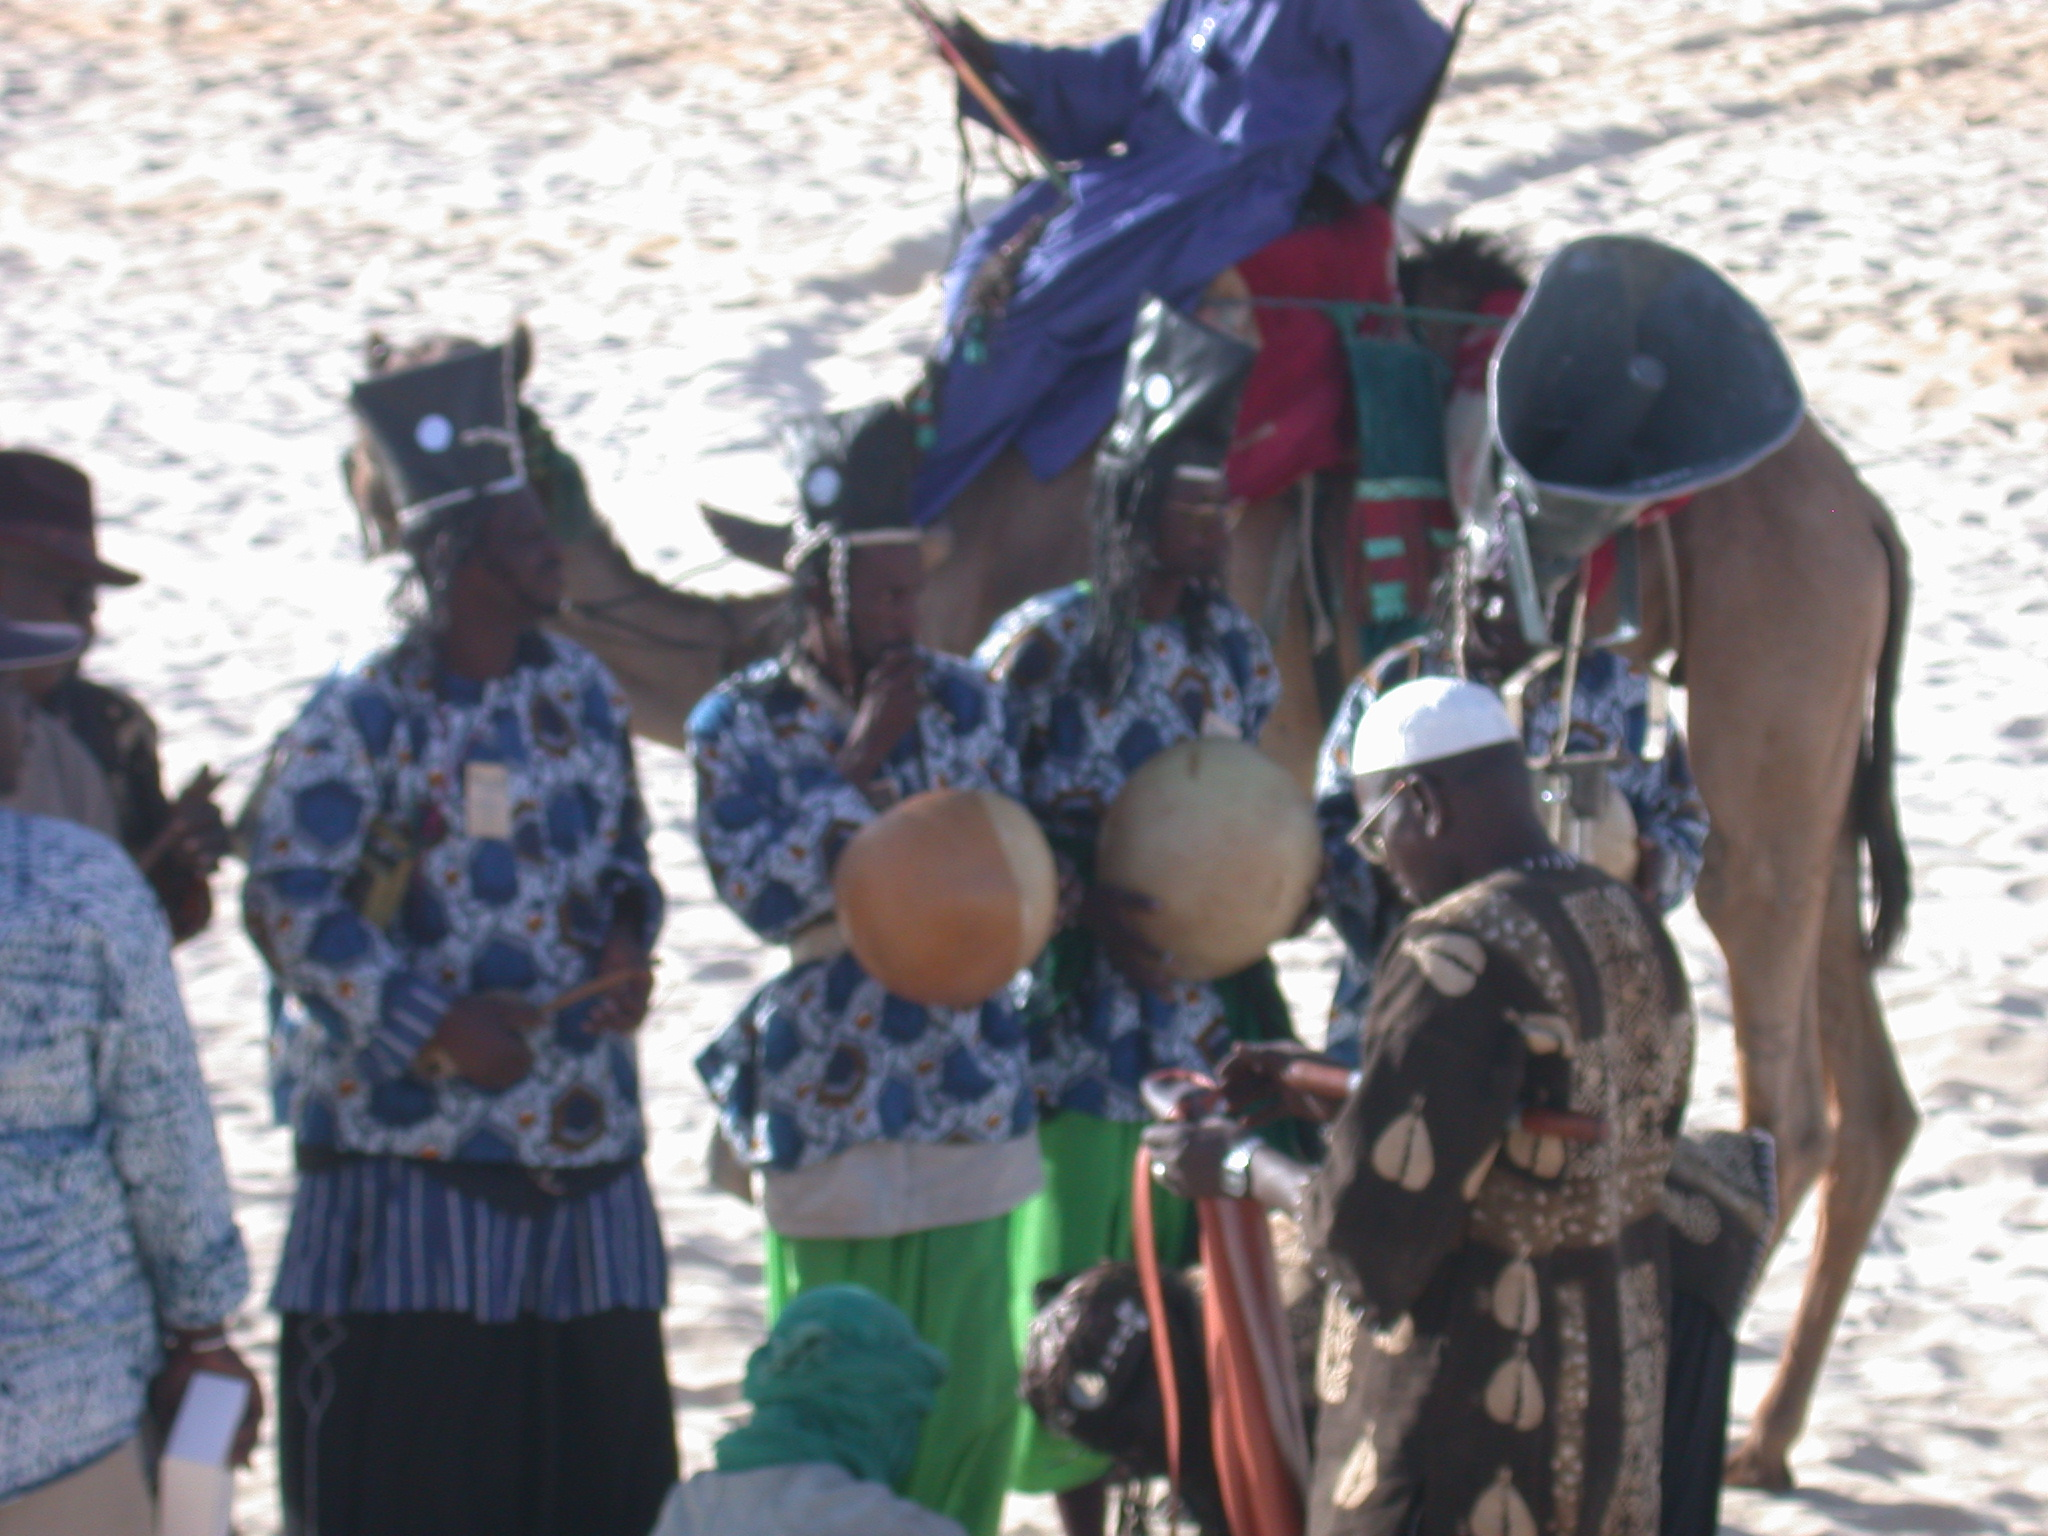 Local Mali Musicians, Festival in the Desert, Essakane, Mali